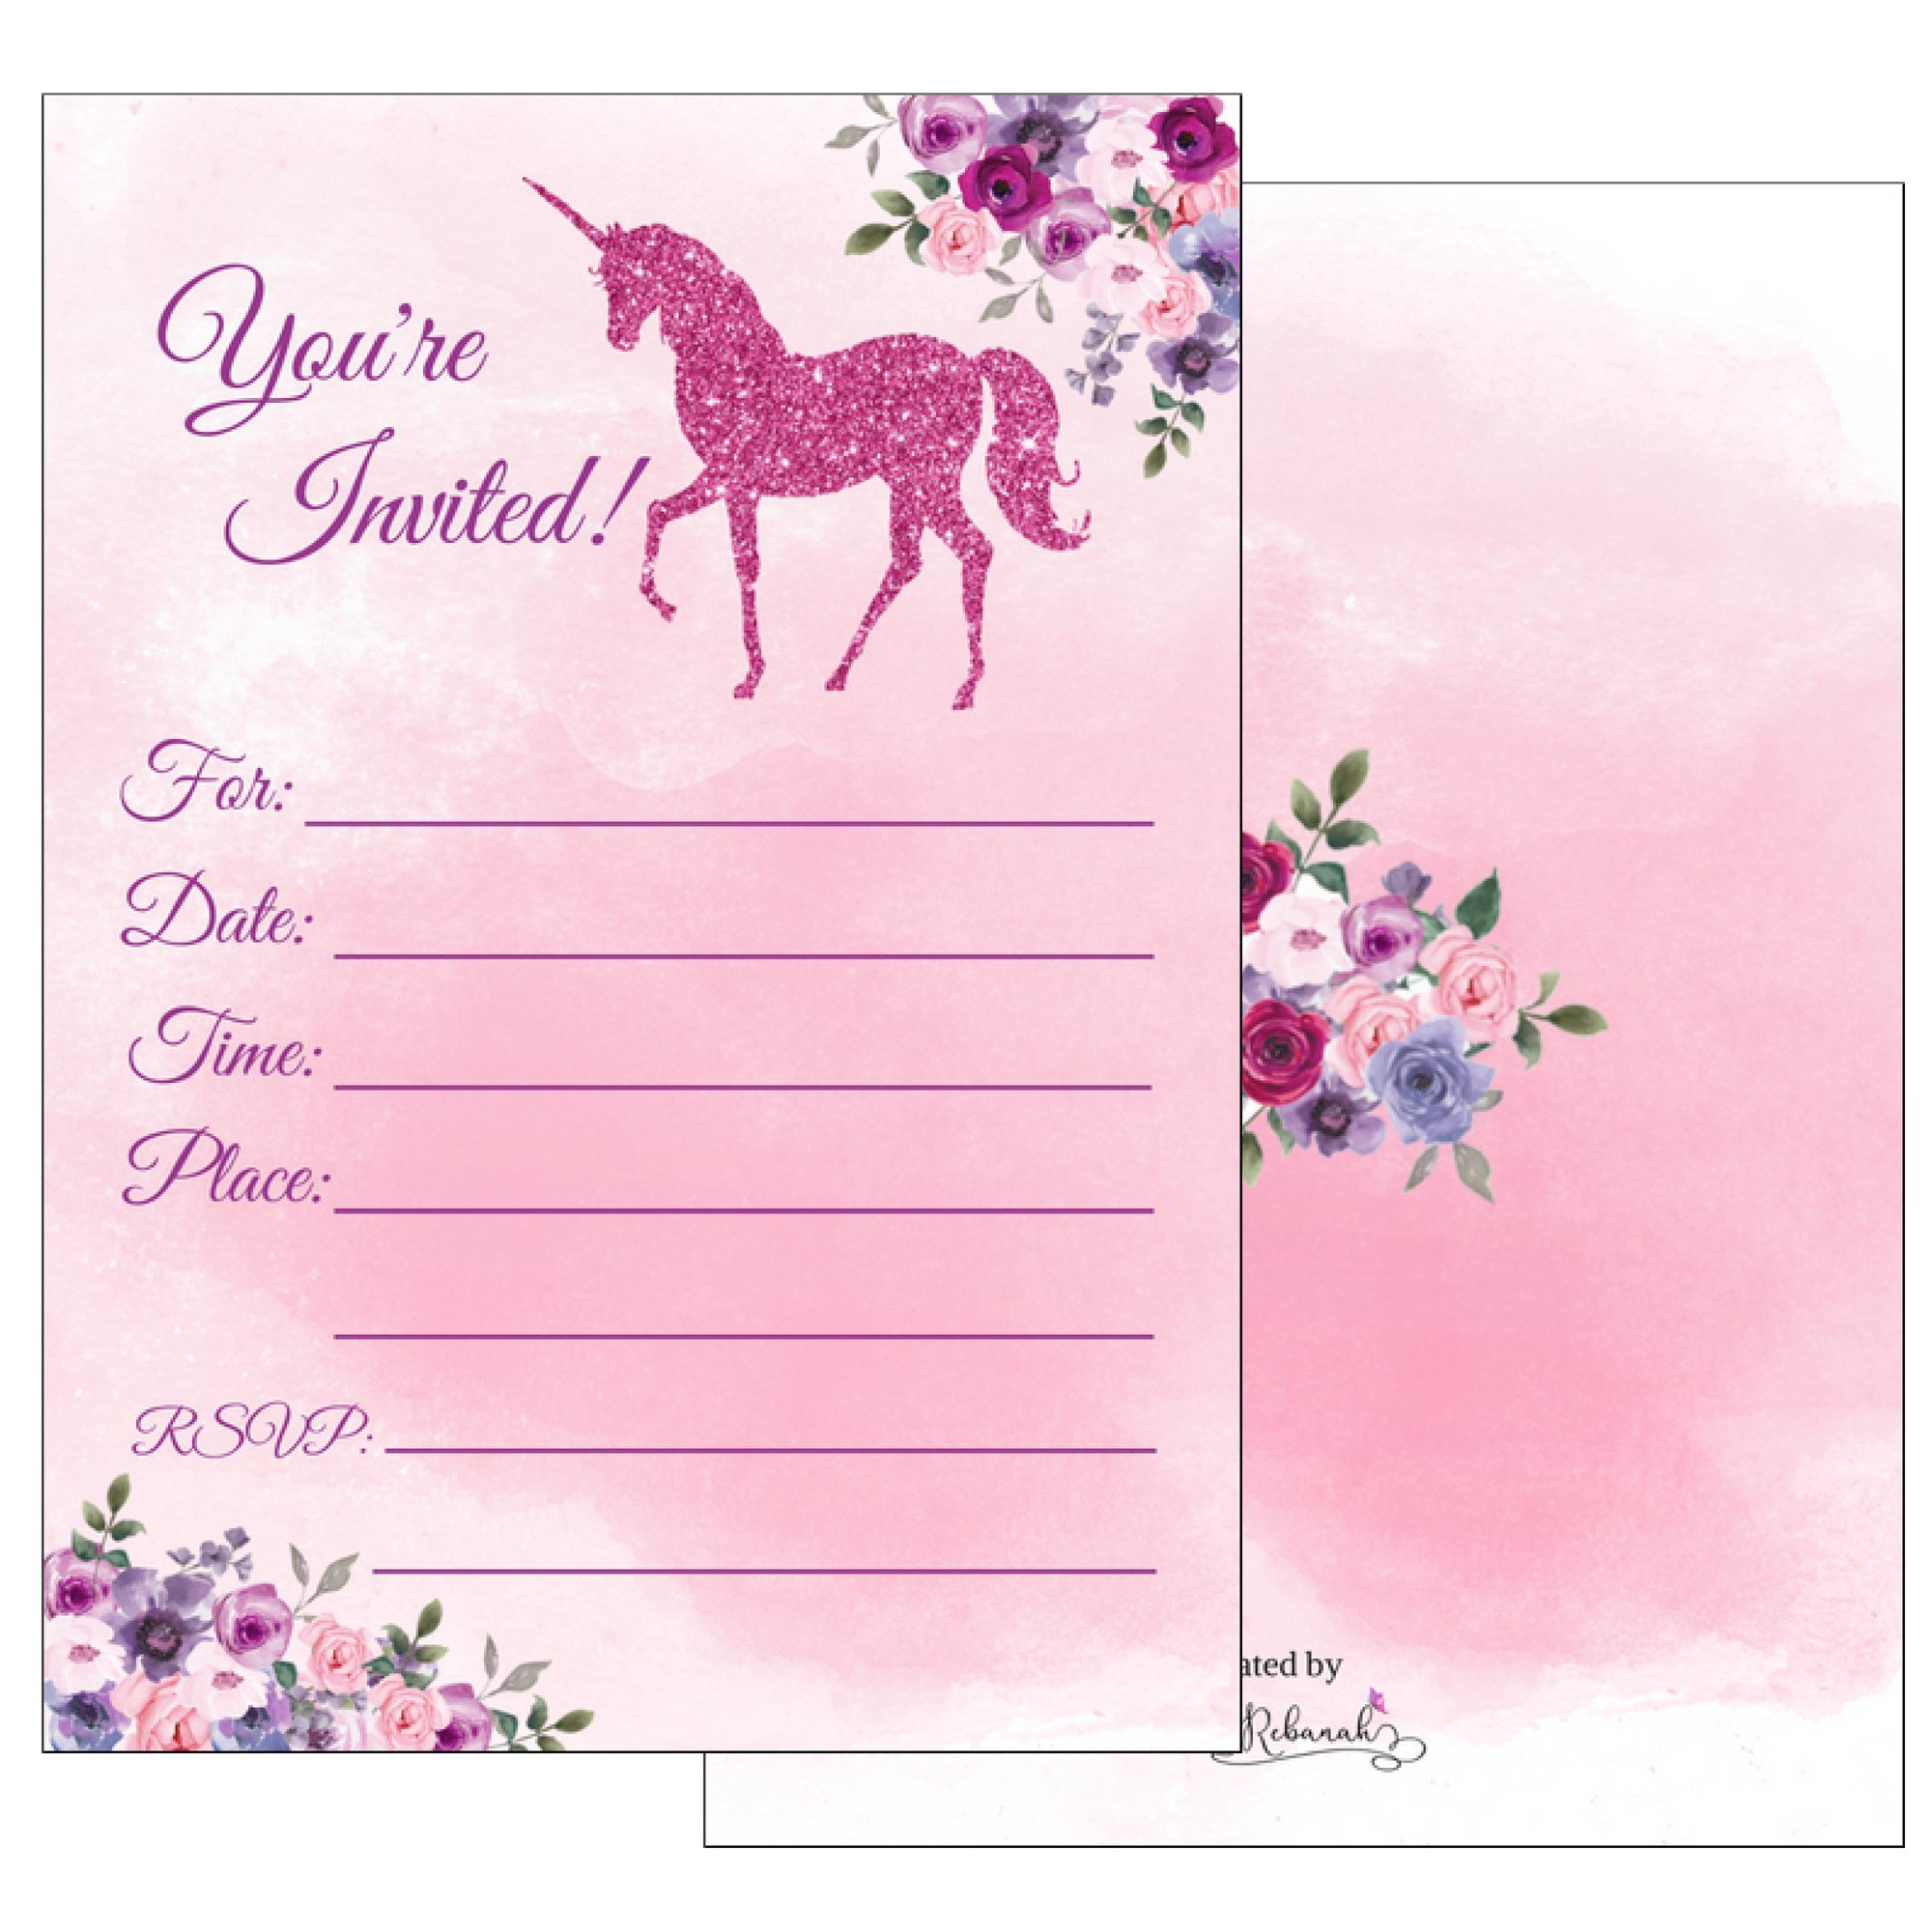 Magical Unicorn Invitations Birthday Party Supplies with Envelopes-Kids Birthday Party Invites for Girls- Fill in Style with Pink Faux Glitter- (25 Pack)